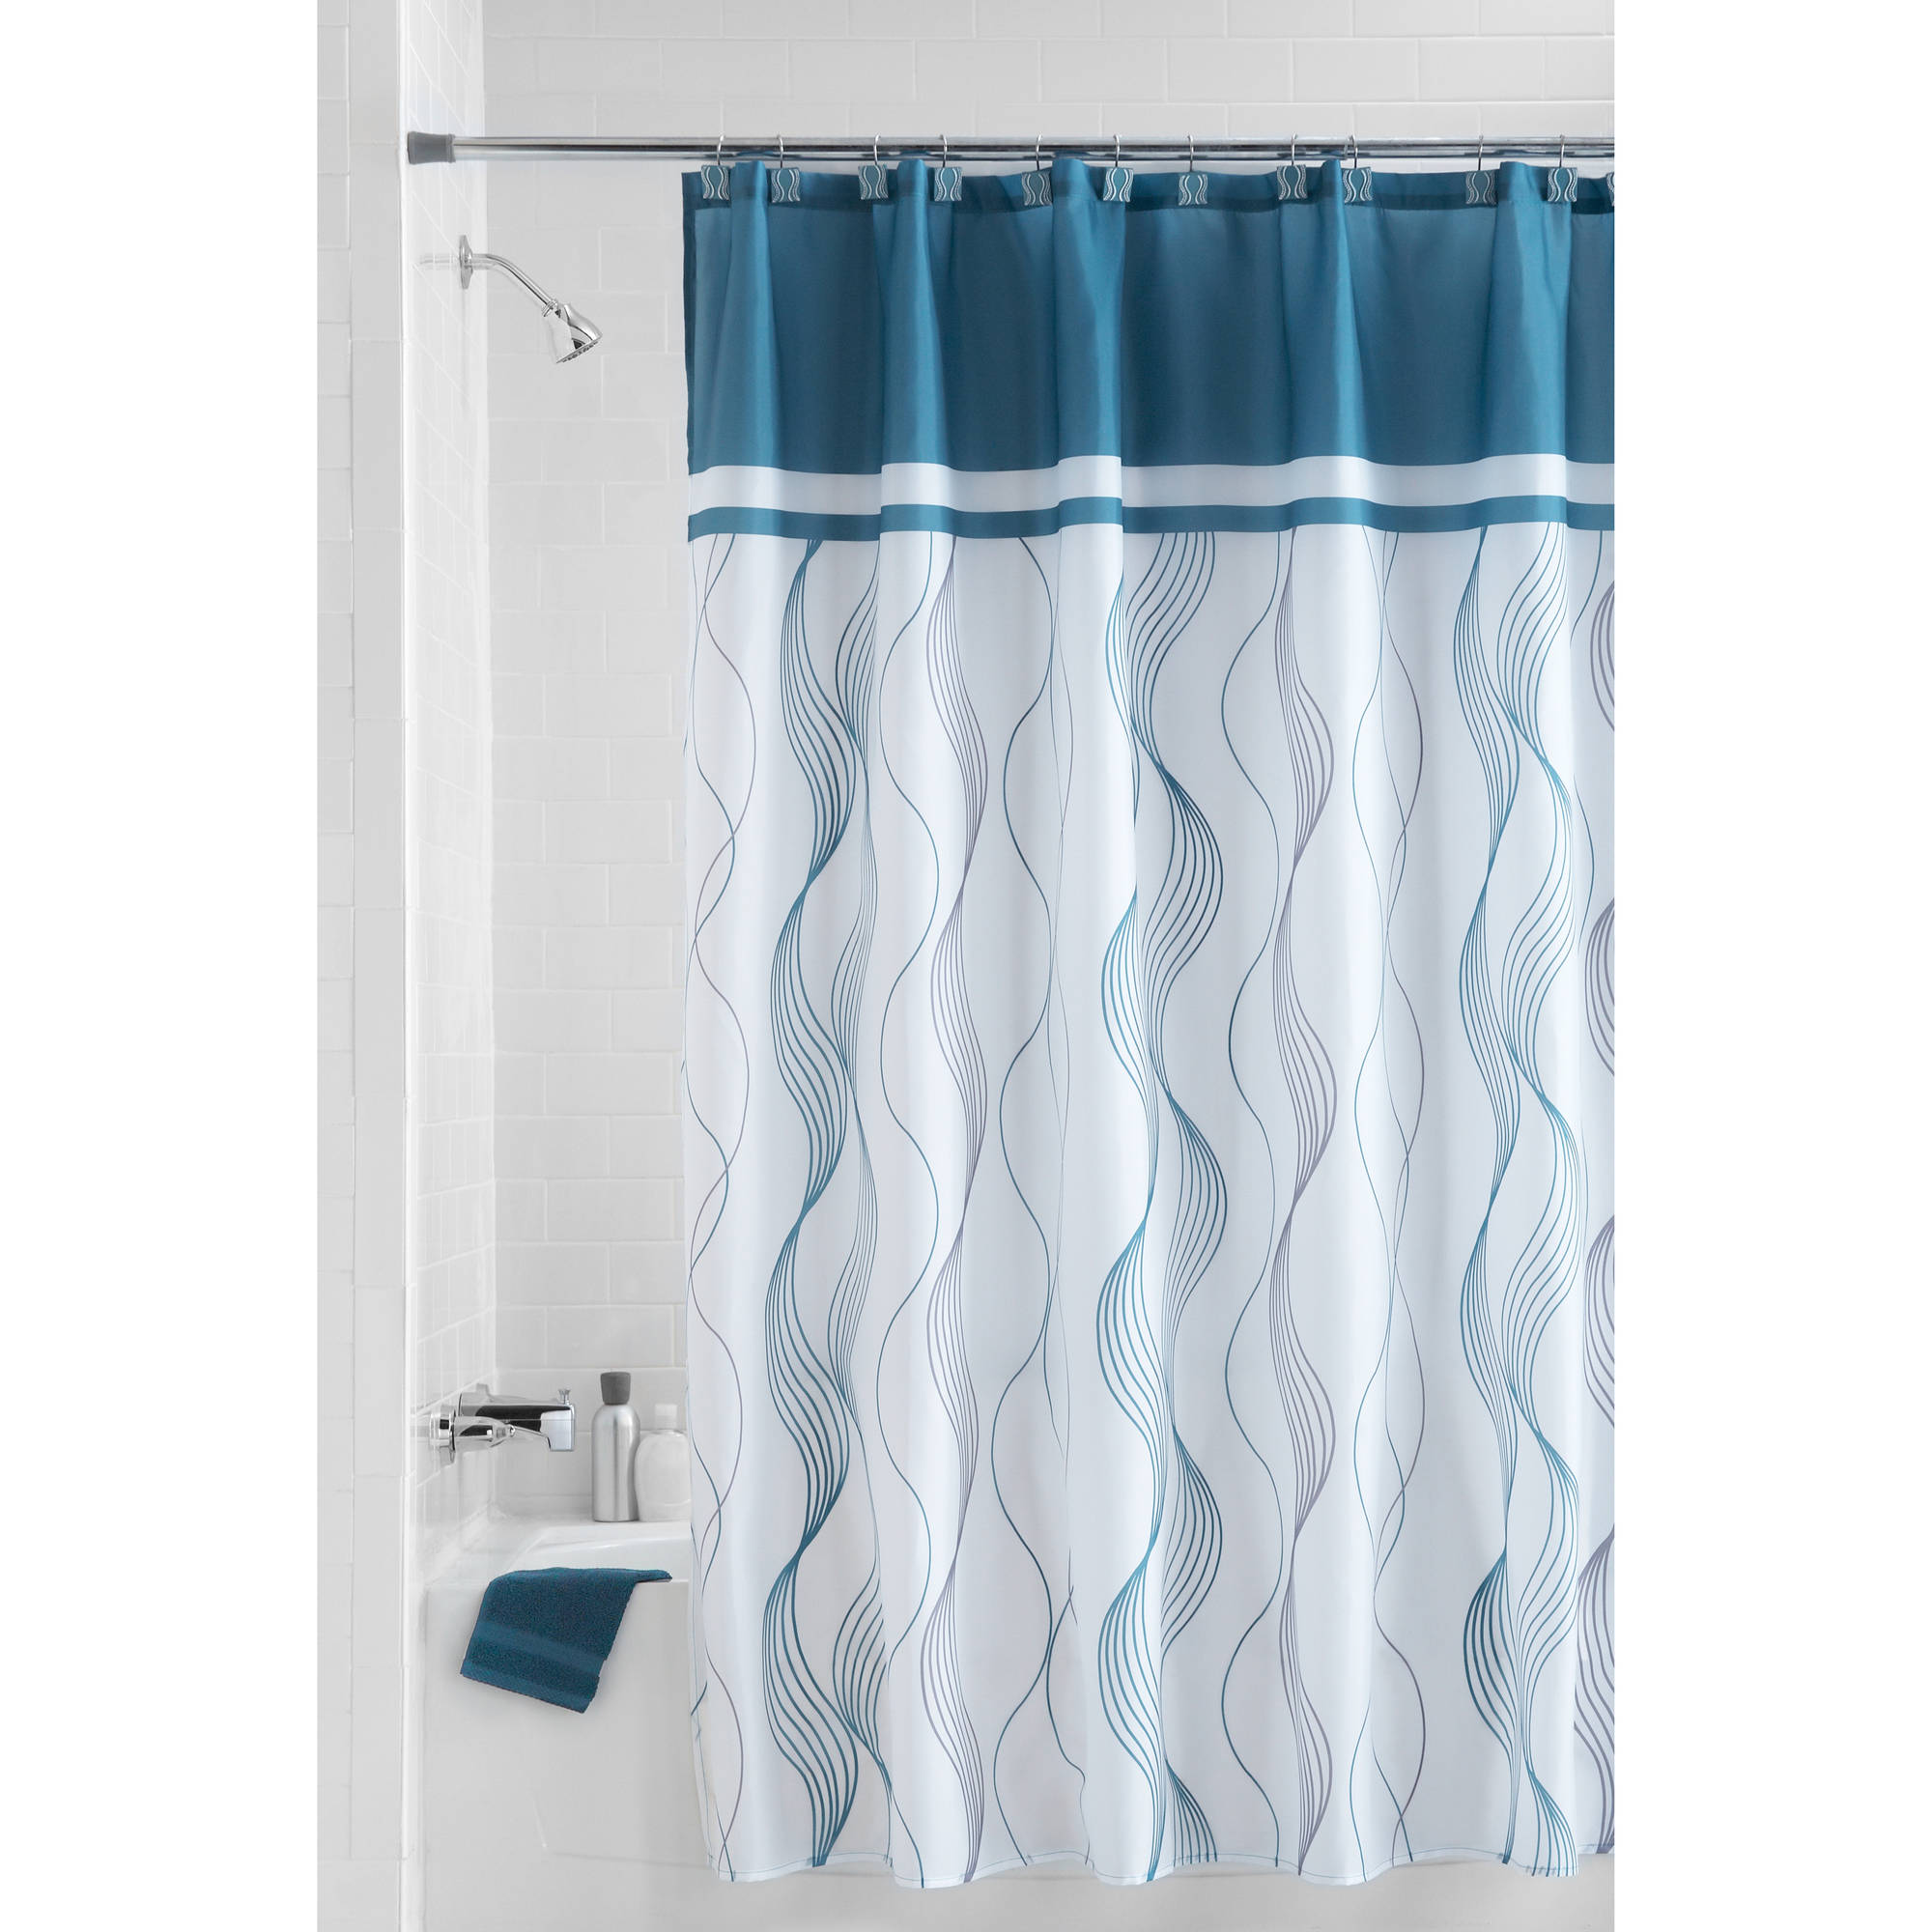 Ikea Shower Curtain for Best Your Bathroom Decoration: Ikea Shower Curtain | Single Stall Shower Curtain | Ikea Tension Rod